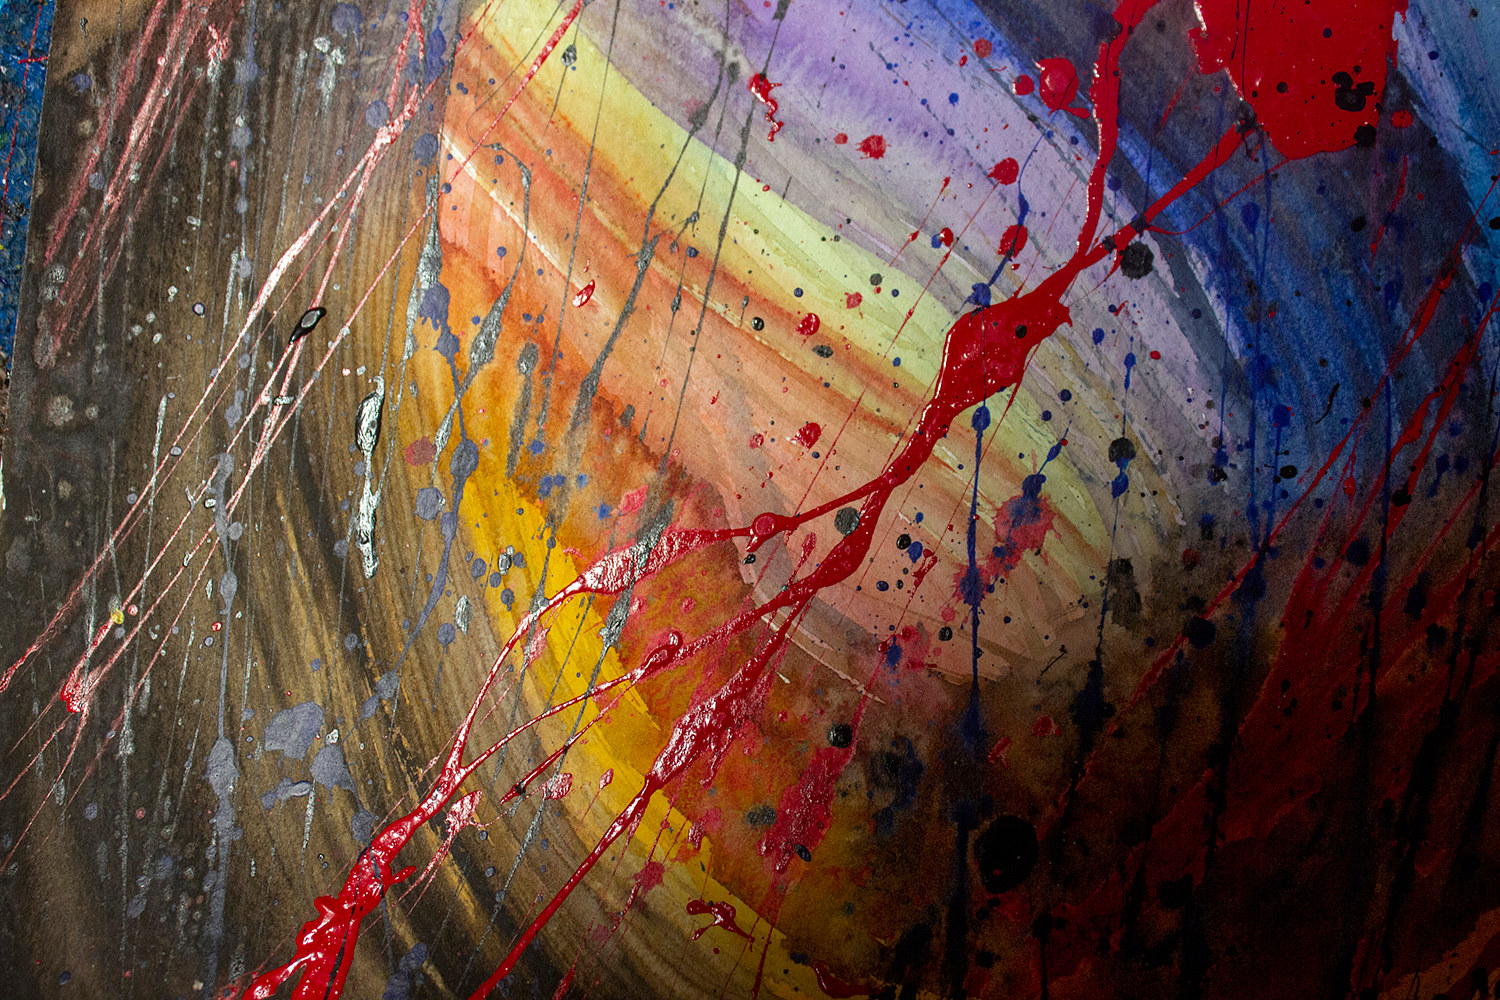 Acrylic painting Whirlwind of joy | Tourbillons de joie by Nathalie Gribinski